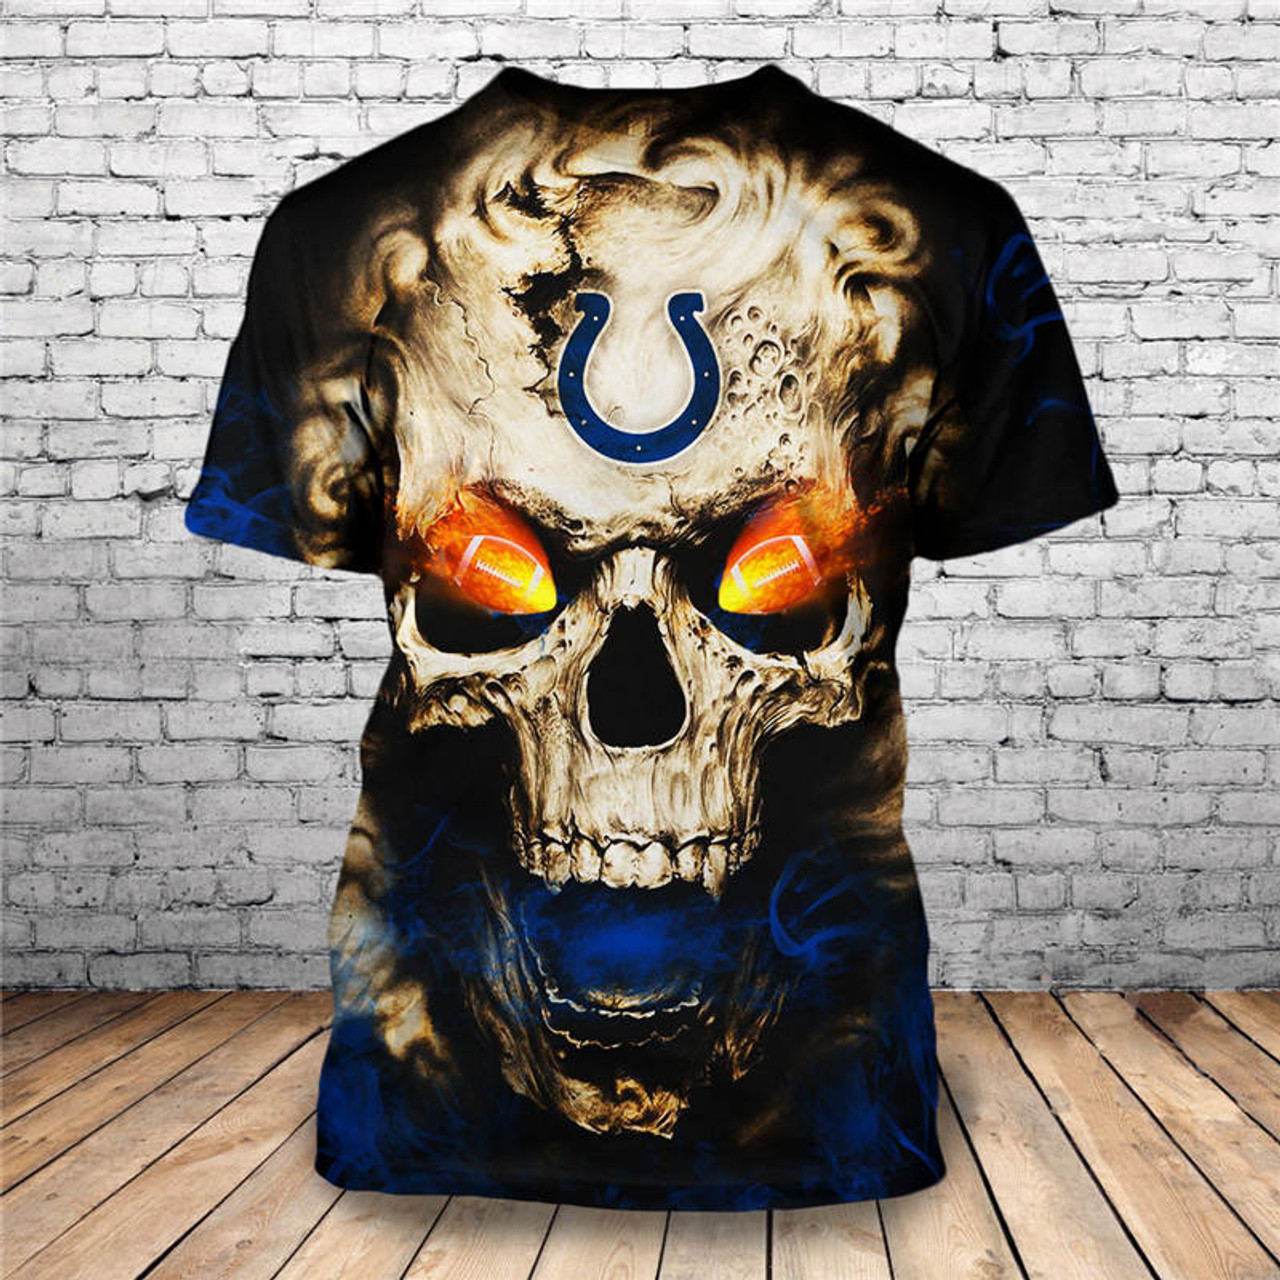 965b3fb7 **(OFFICIALLY-LICENSED-N.F.L.INDIANAPOLIS-COLTS,TRENDY-SHORT-SLEEVE-TEES &  NEON-GLOWING-FIERY-COLTS-FOOTBALL-EYES,NICE-CUSTOM-3D-GRAPHIC-PRINTED-ALL-O...